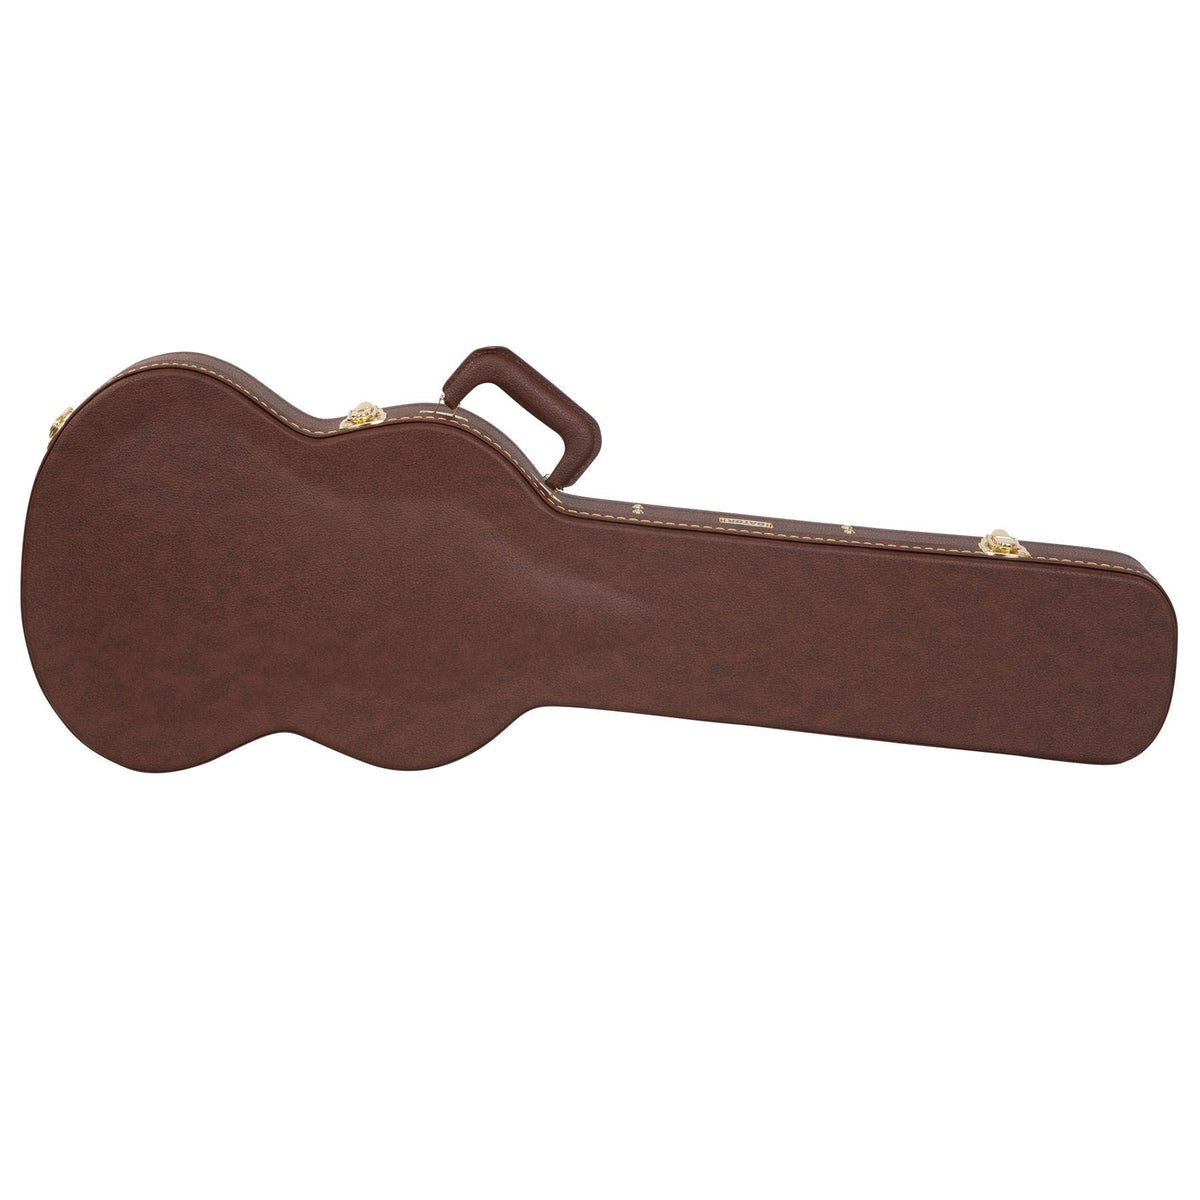 Gator Cases Deluxe Brown Wood Case for Gibson SG '61 Reissue, SG-3, SG Menace Electric Guitars